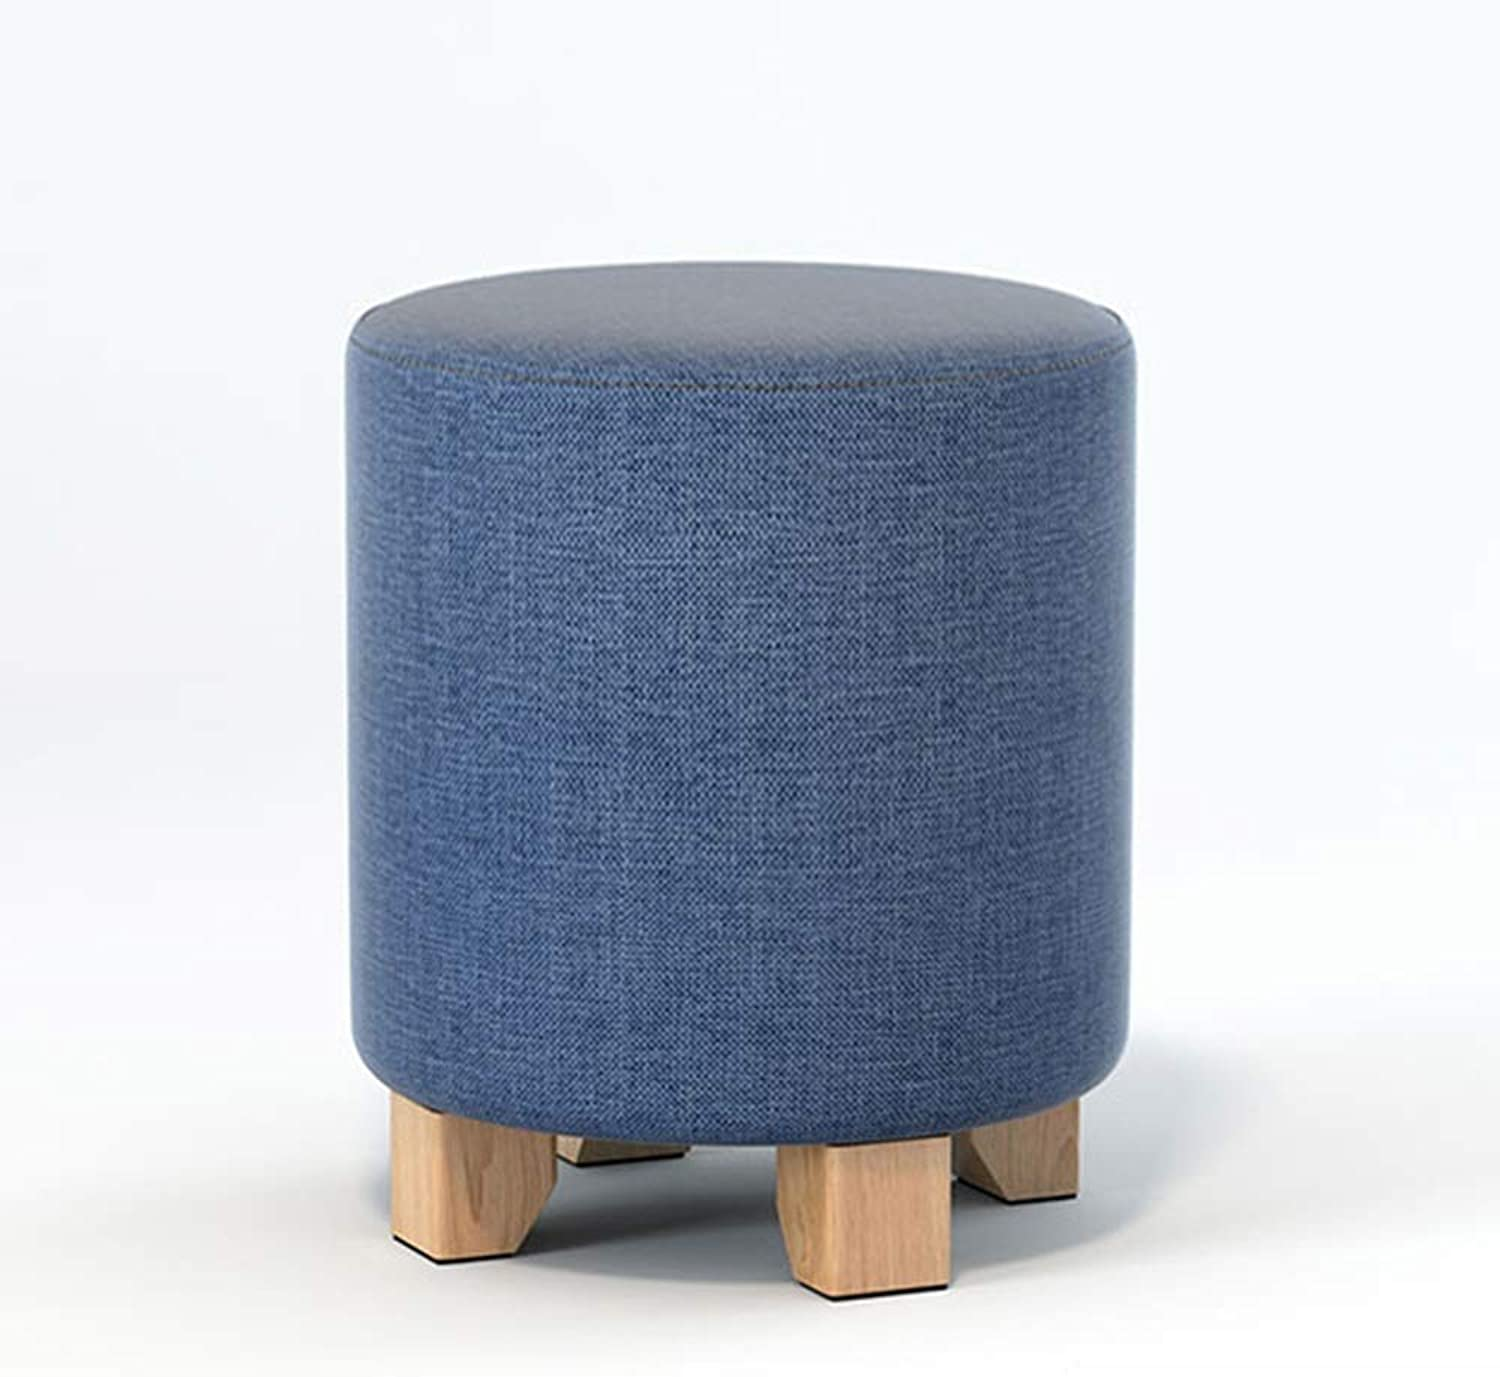 XRXY Footstool, Solid Wood Bench, Living Room Sofa Stool, Cloth Small Stool, Small Sitting Pier, Household Low Stool, 30 35 cm Height, 9 colors (color   B, Size   35CM)